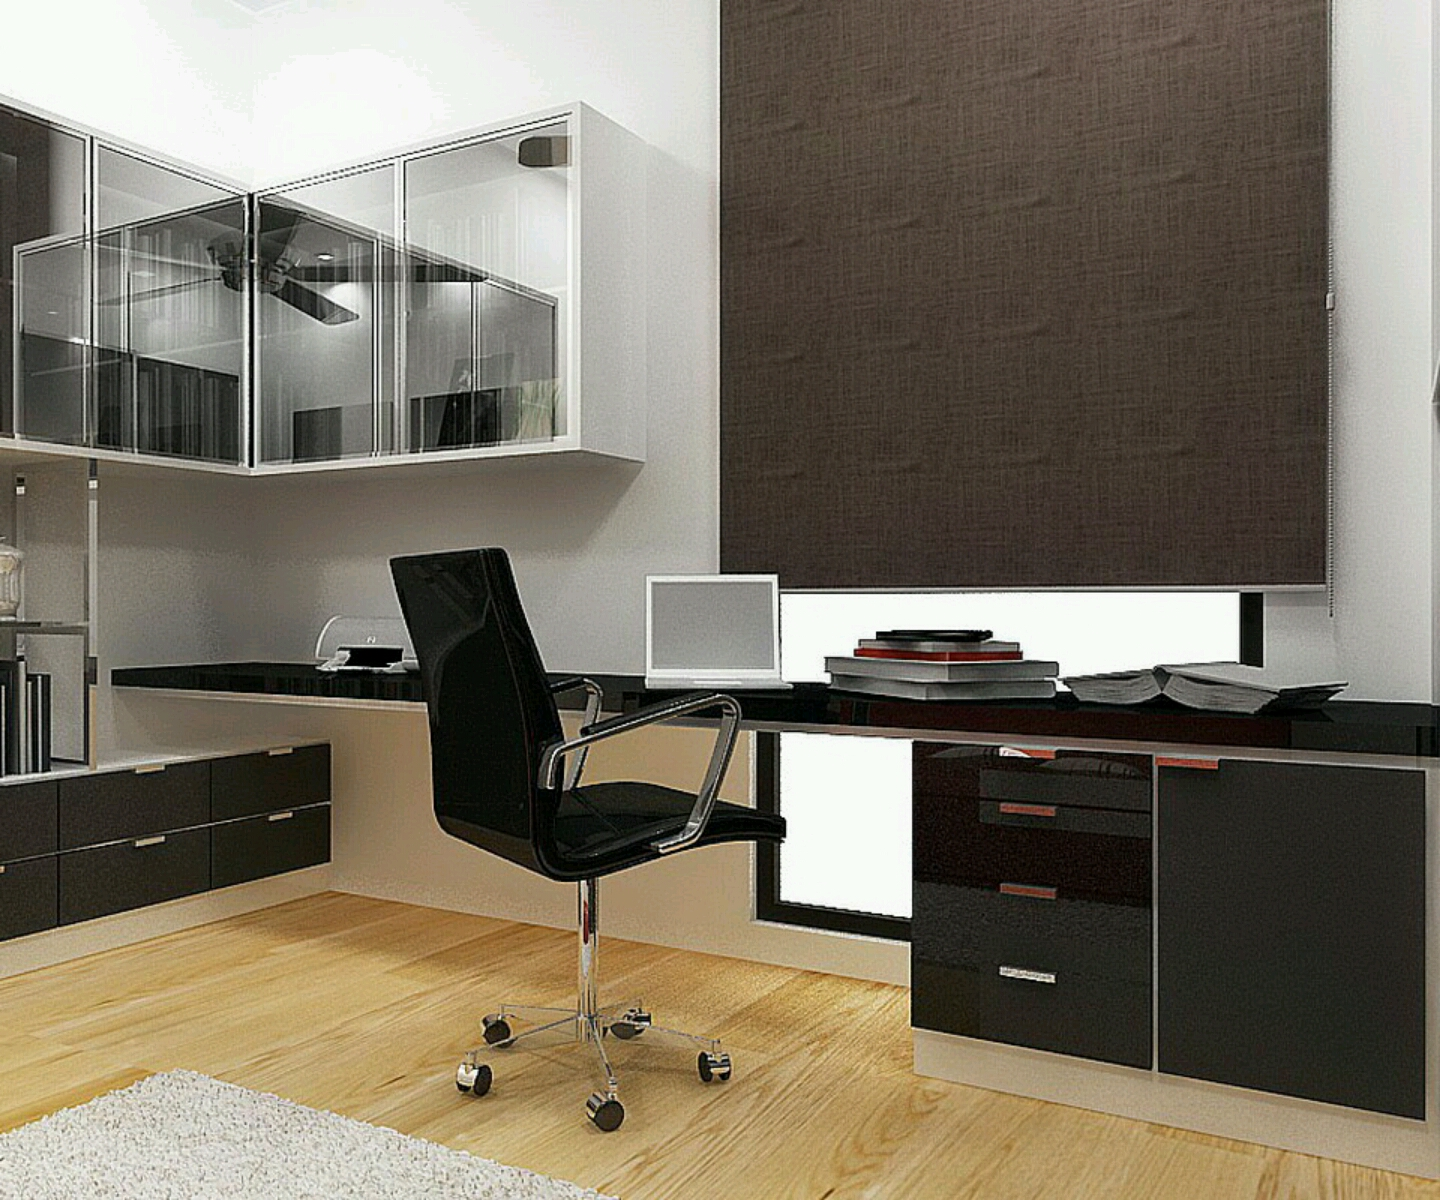 Study rooms furnitures designs ideas. | Interior Design